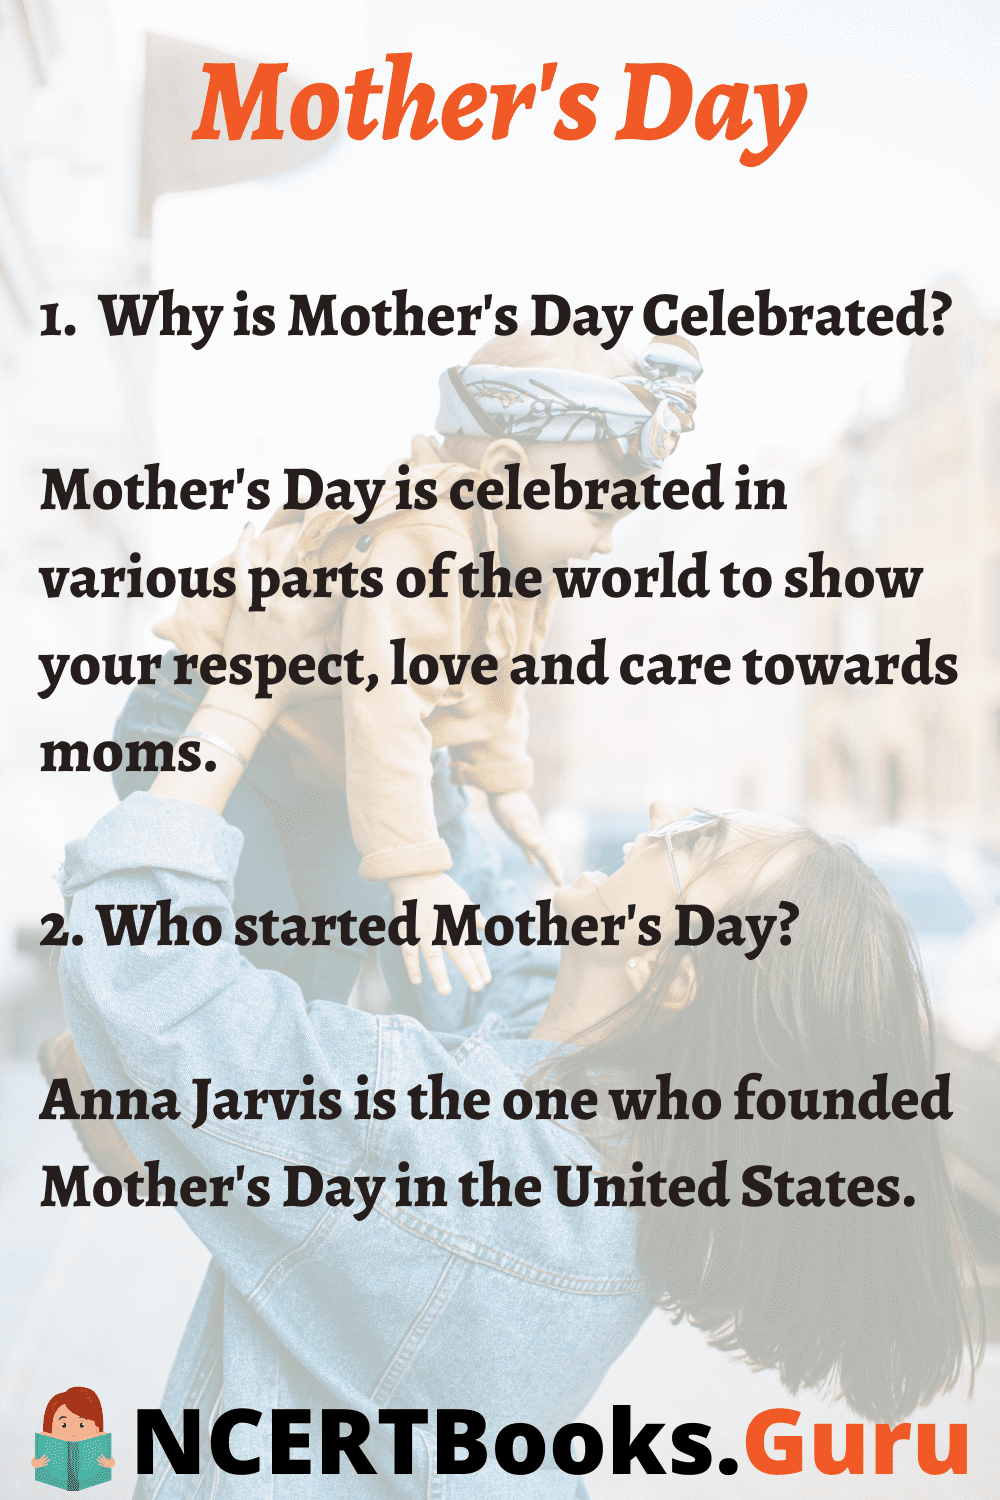 Why is Mothers Day Celebrated